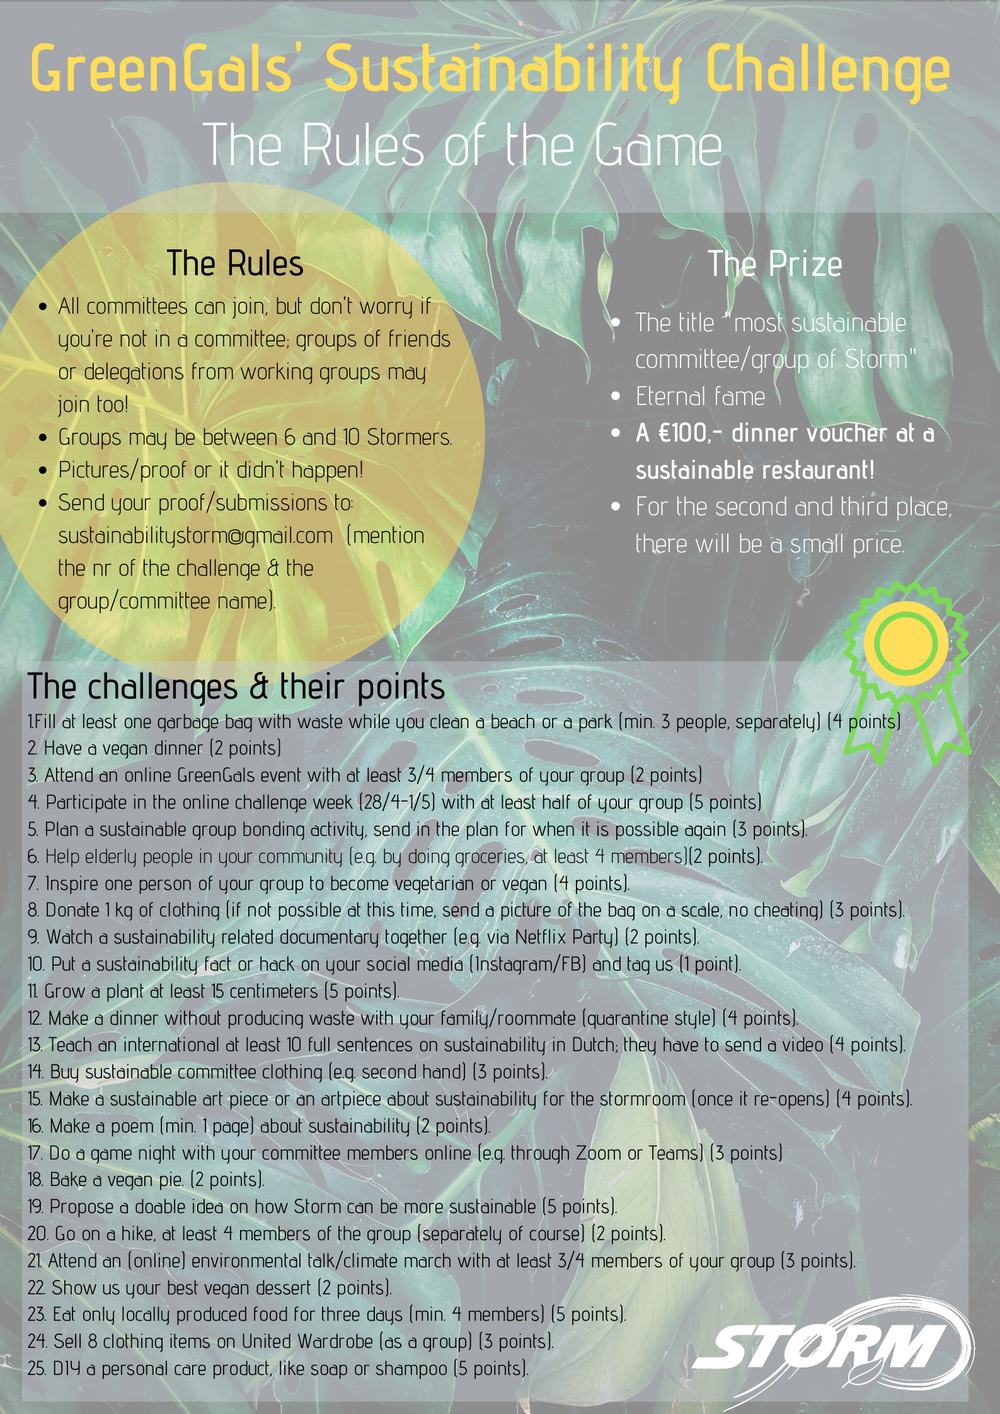 Greengals' Sustainability Challenge - Updated